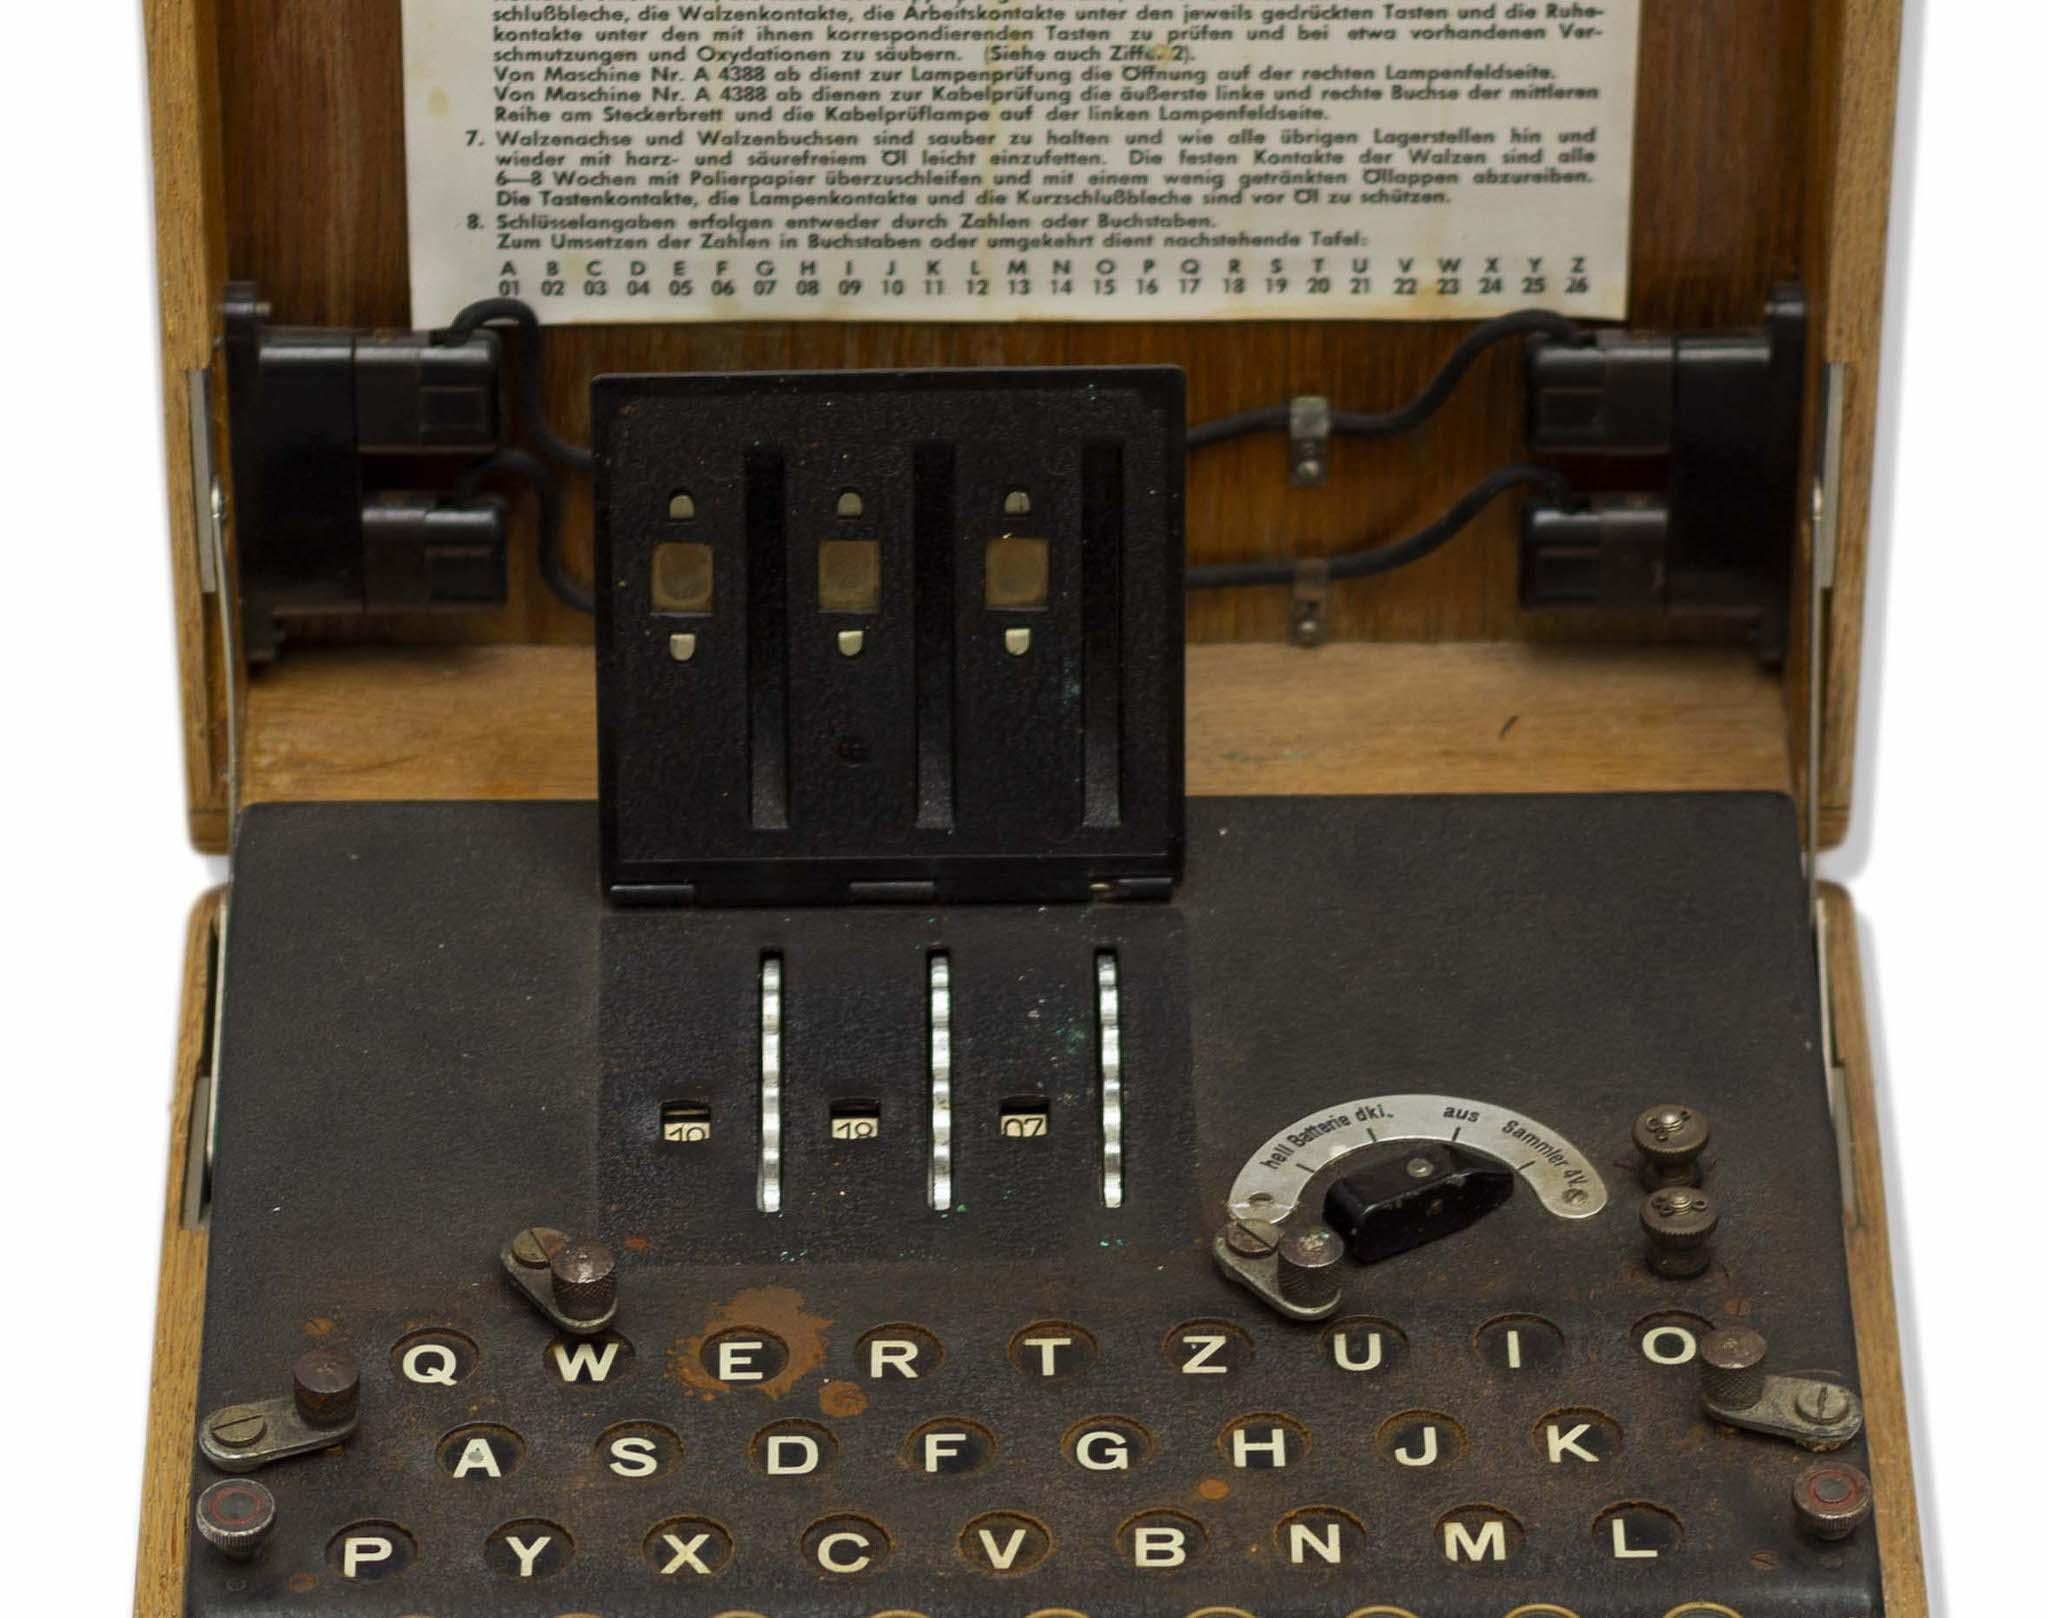 Rare enigma machine with original parts goes on sale